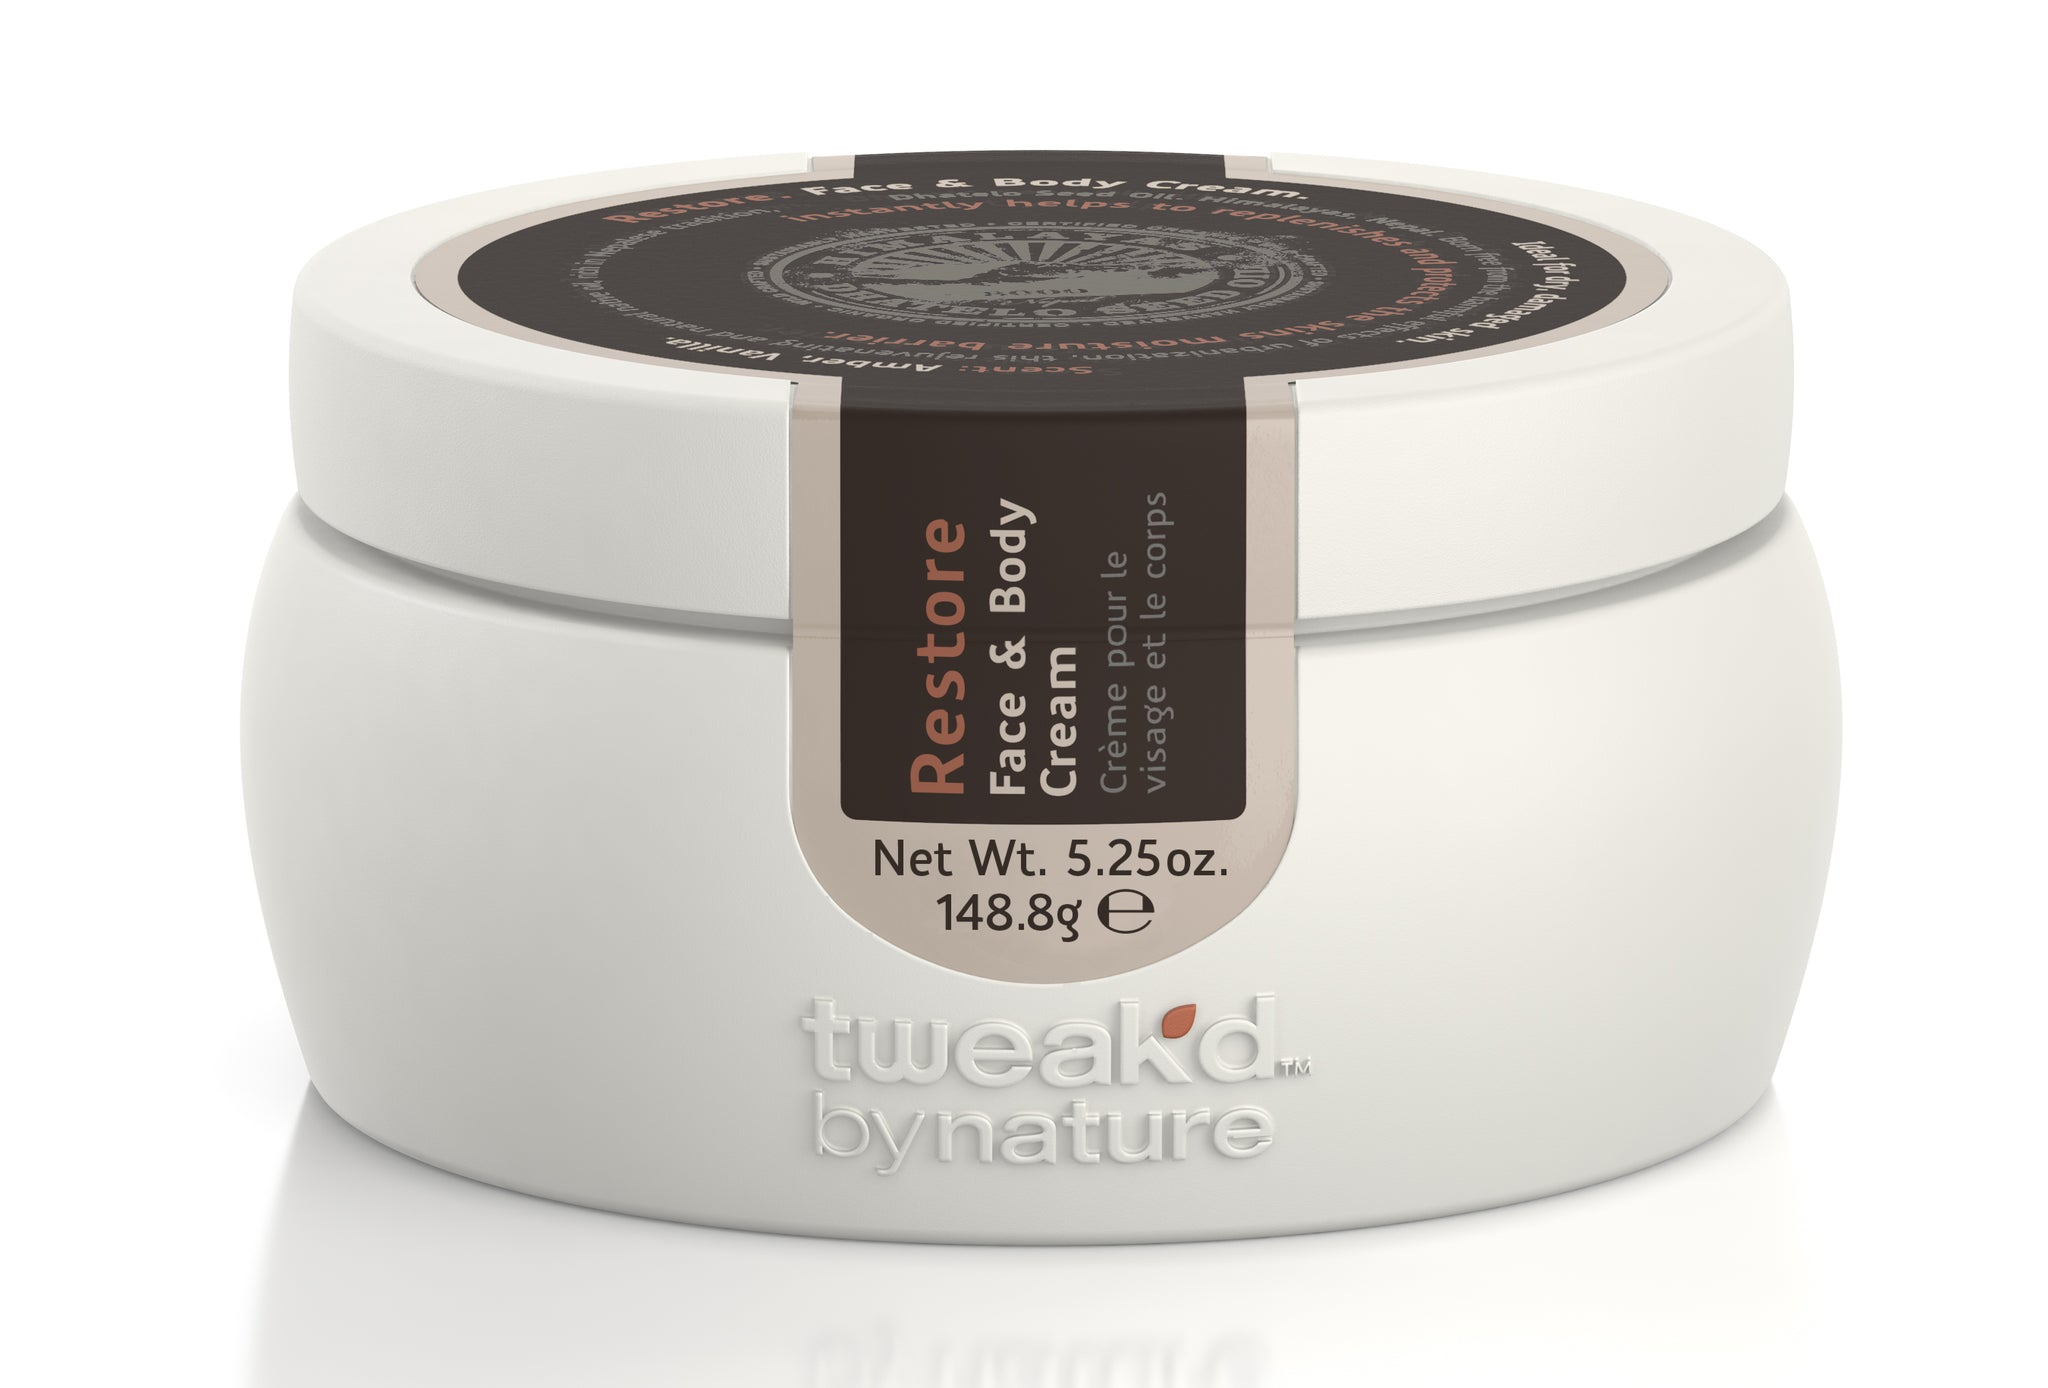 Tweak'd by Nature Restore Dhatelo All-Purpose Face & Body Cream